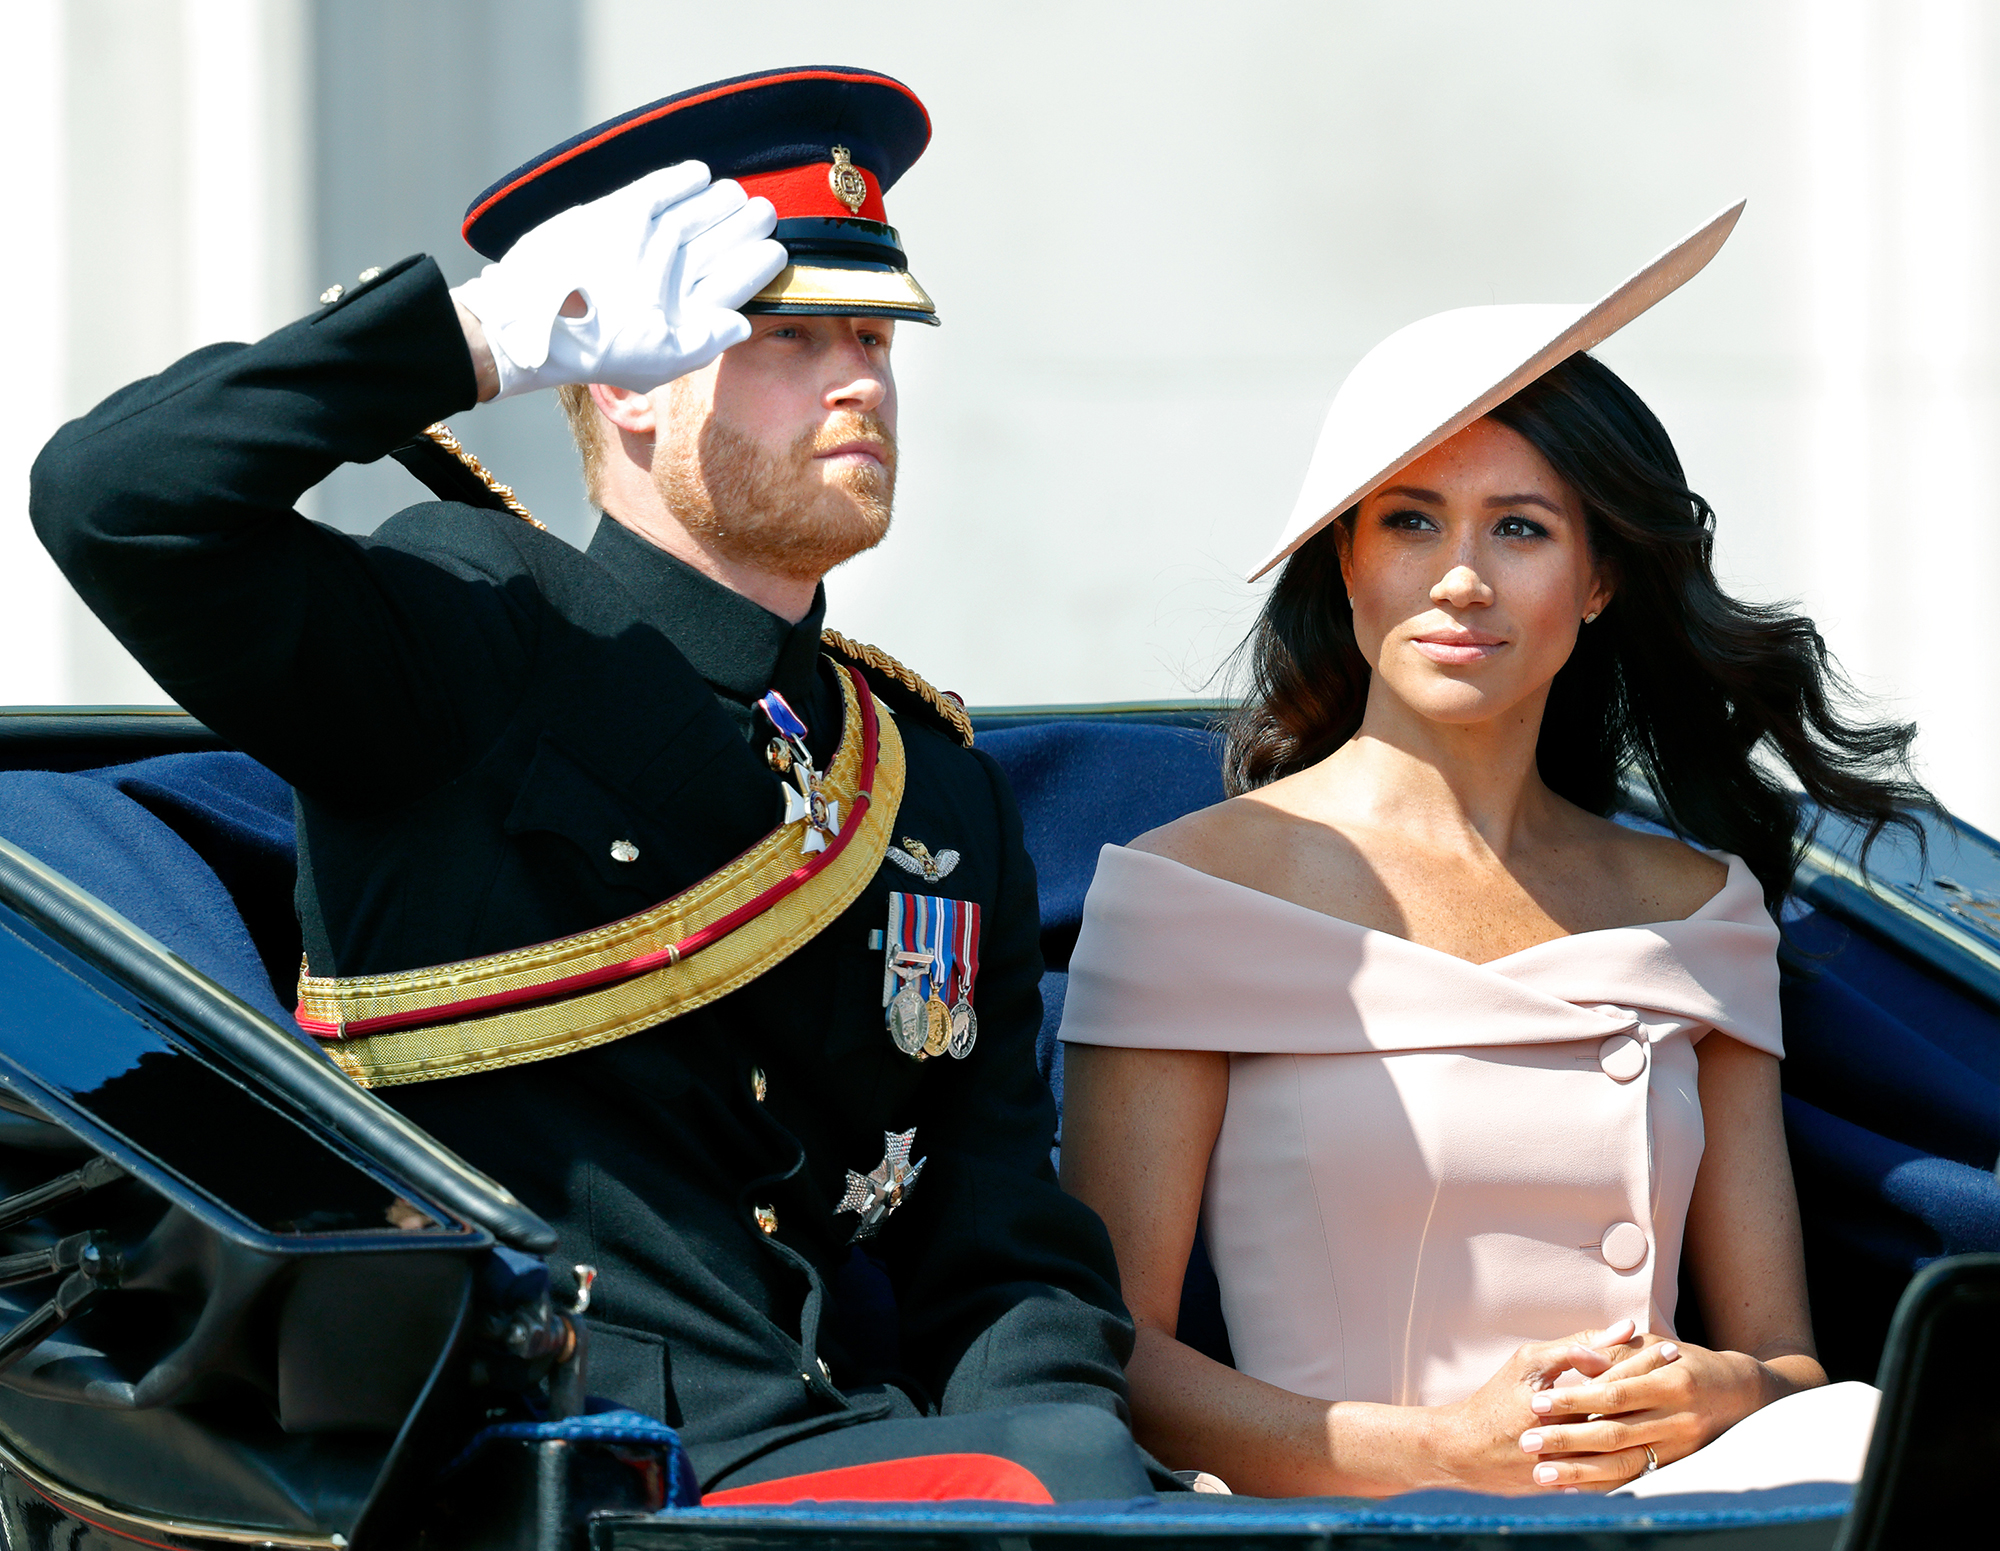 """Prince Harry and Duchess Meghan's 1st Year of Marriage - The newly minted Duke and Duchess of Sussex made their first post-honeymoon appearance at London's Trooping the Colour in June 2018. A source told Us at the time that Meghan was """"happy"""" the wedding was over ."""